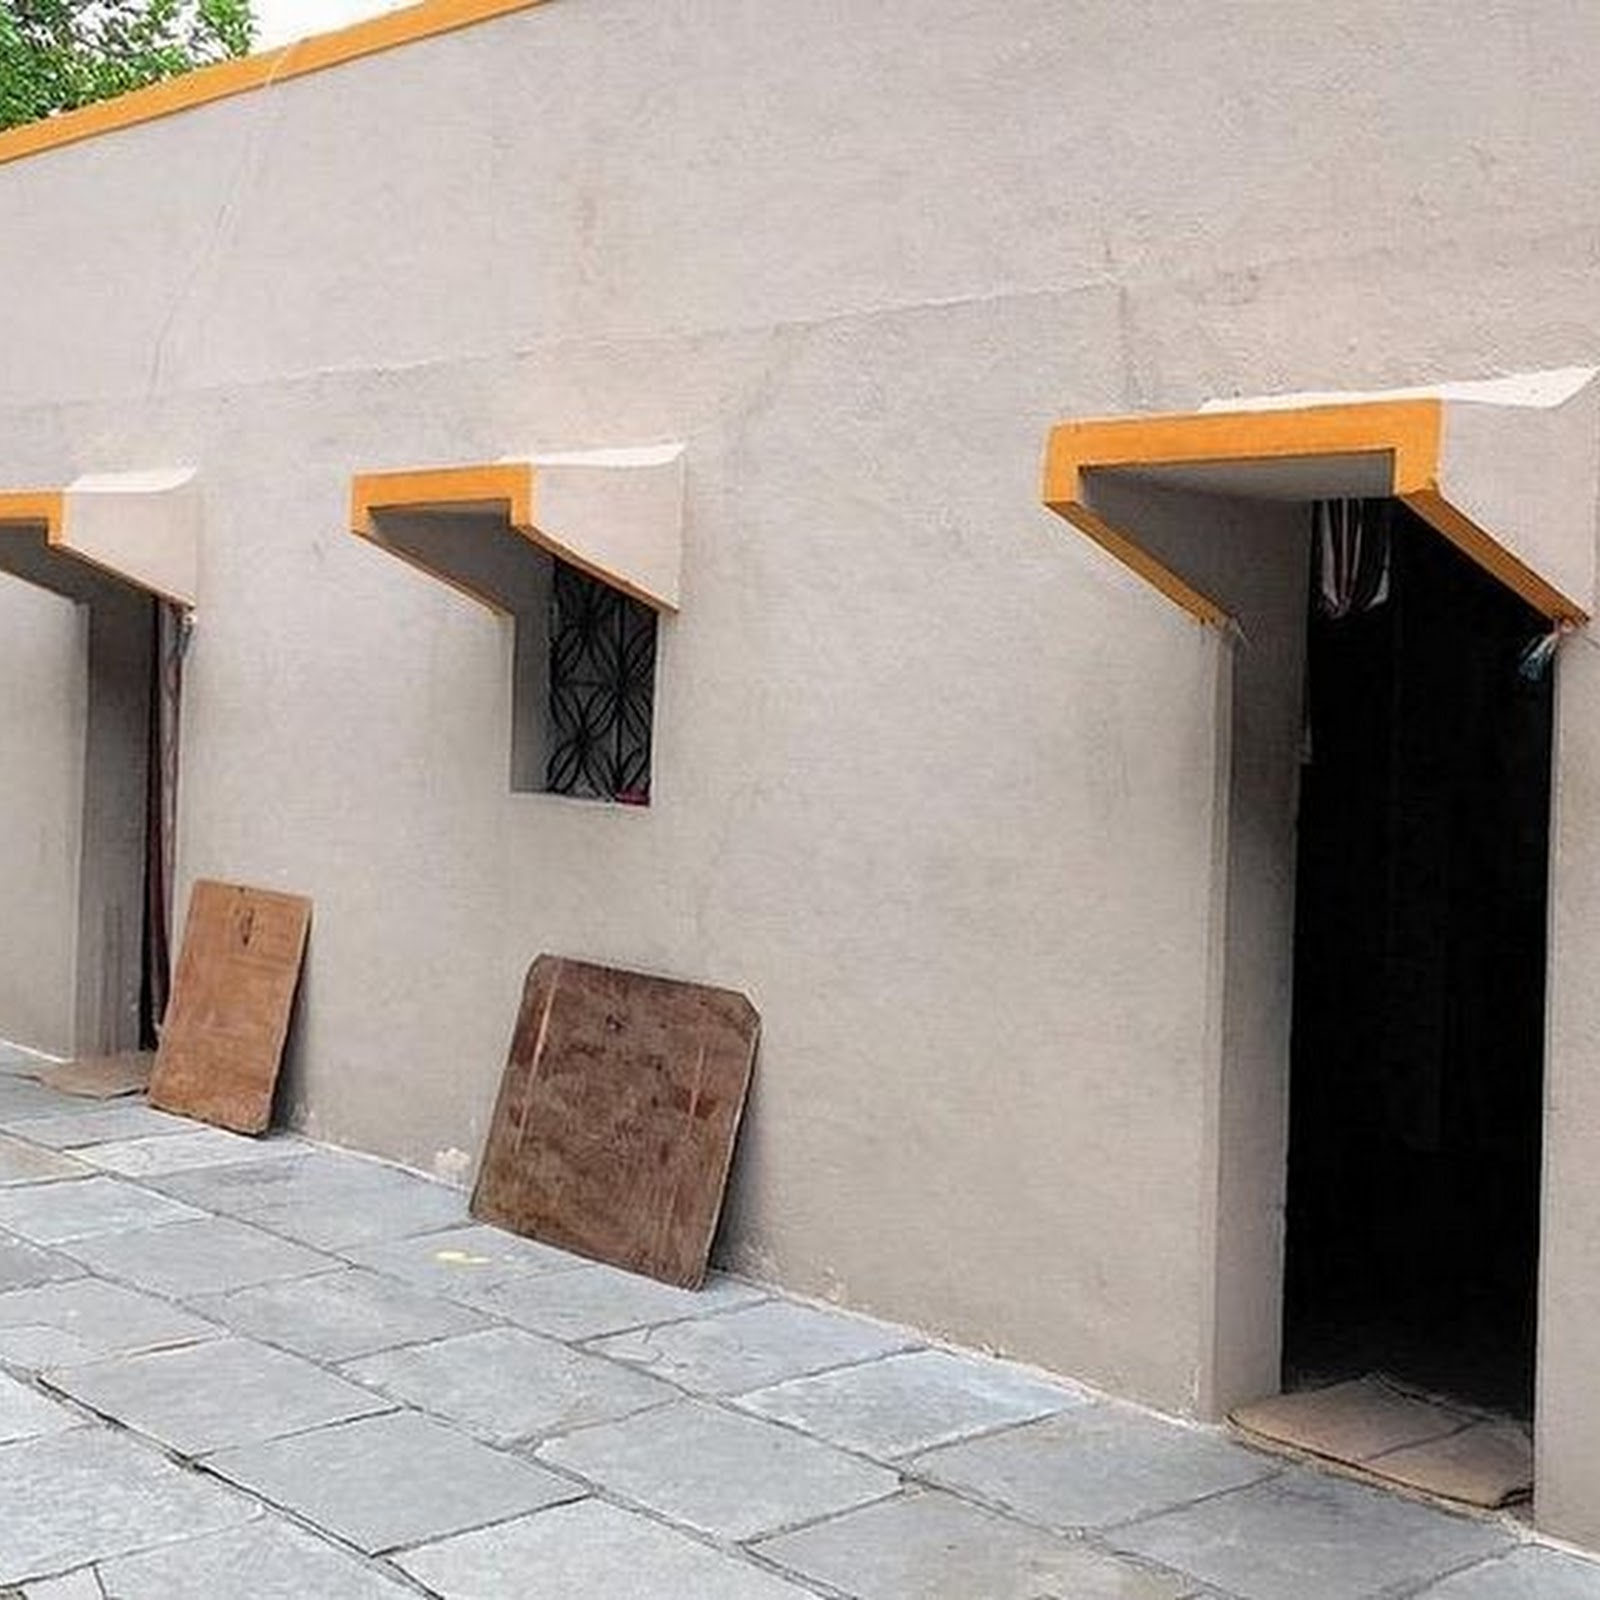 Shani Shingnapur: The Village Without Doors